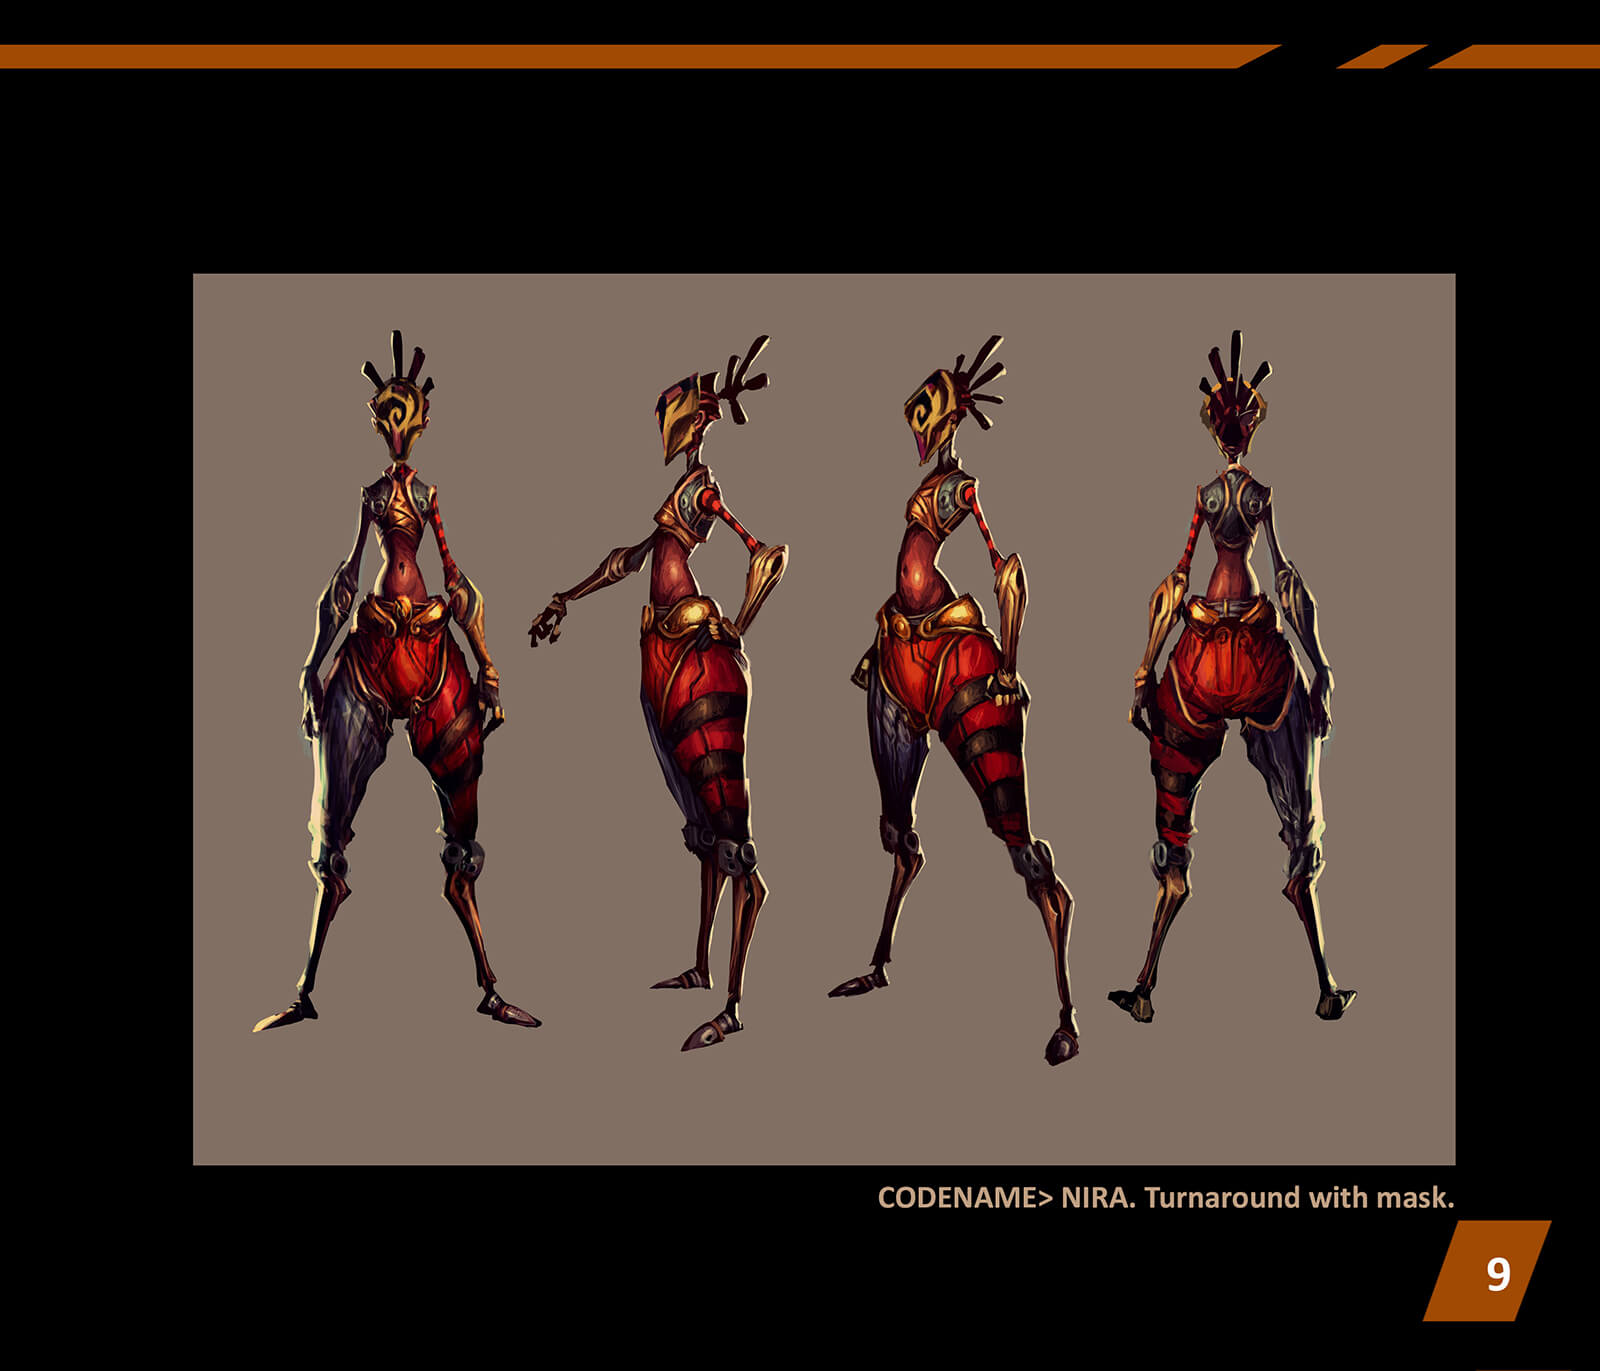 Character design turnaround of an abstractly proportioned woman standing in ornate red and black battle gear and face mask